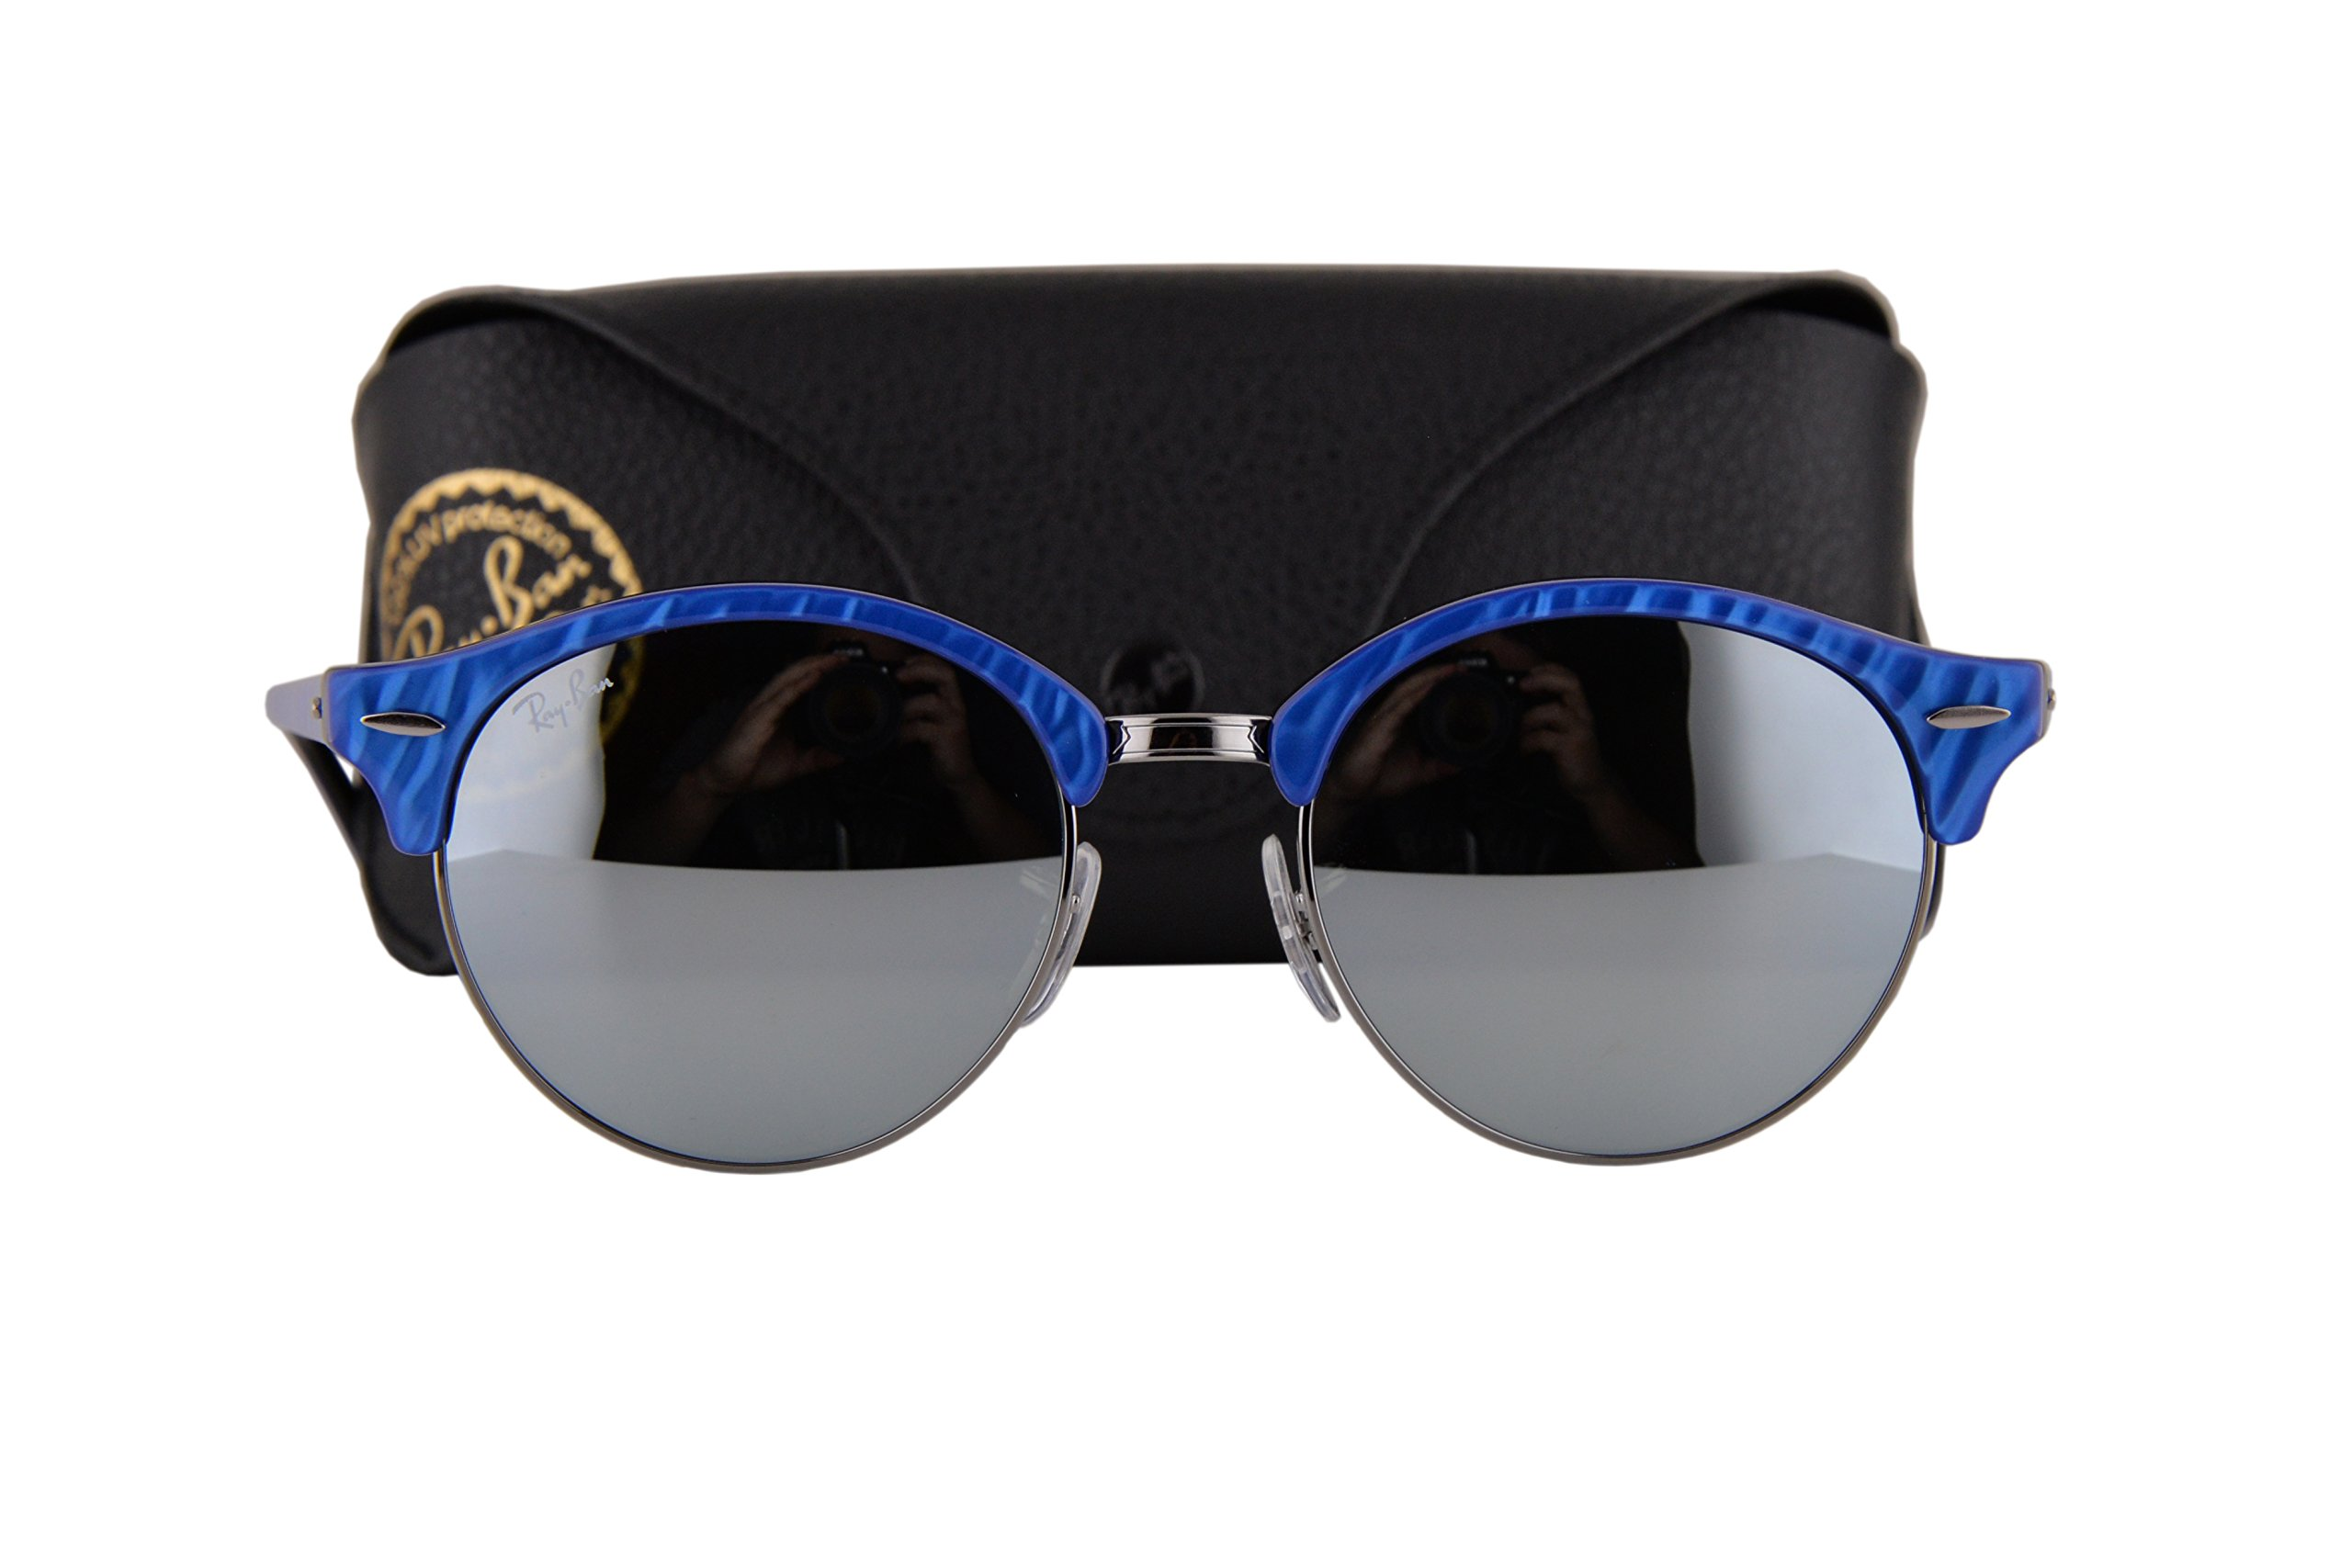 Ray Ban RB4246 Clubround Sunglasses Top Wrinkled Blue On Black w/Green Mirror Silver Lens 98430 RB 4246